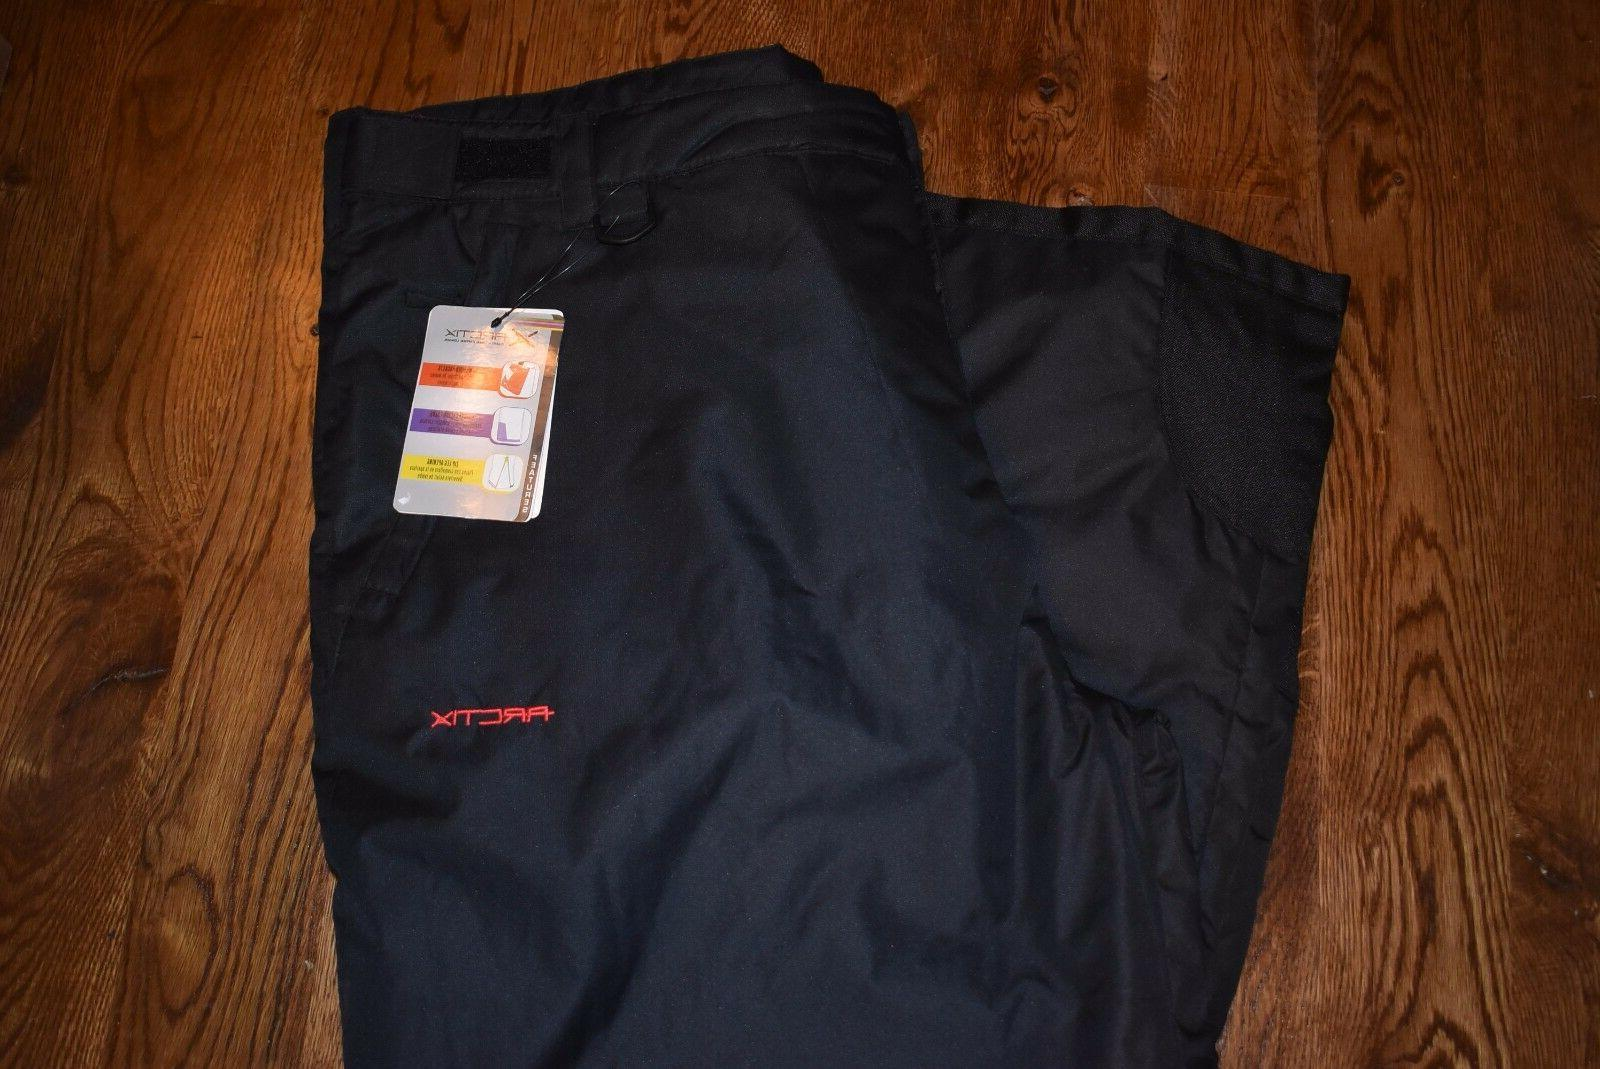 Size Insulated Pants 24 28